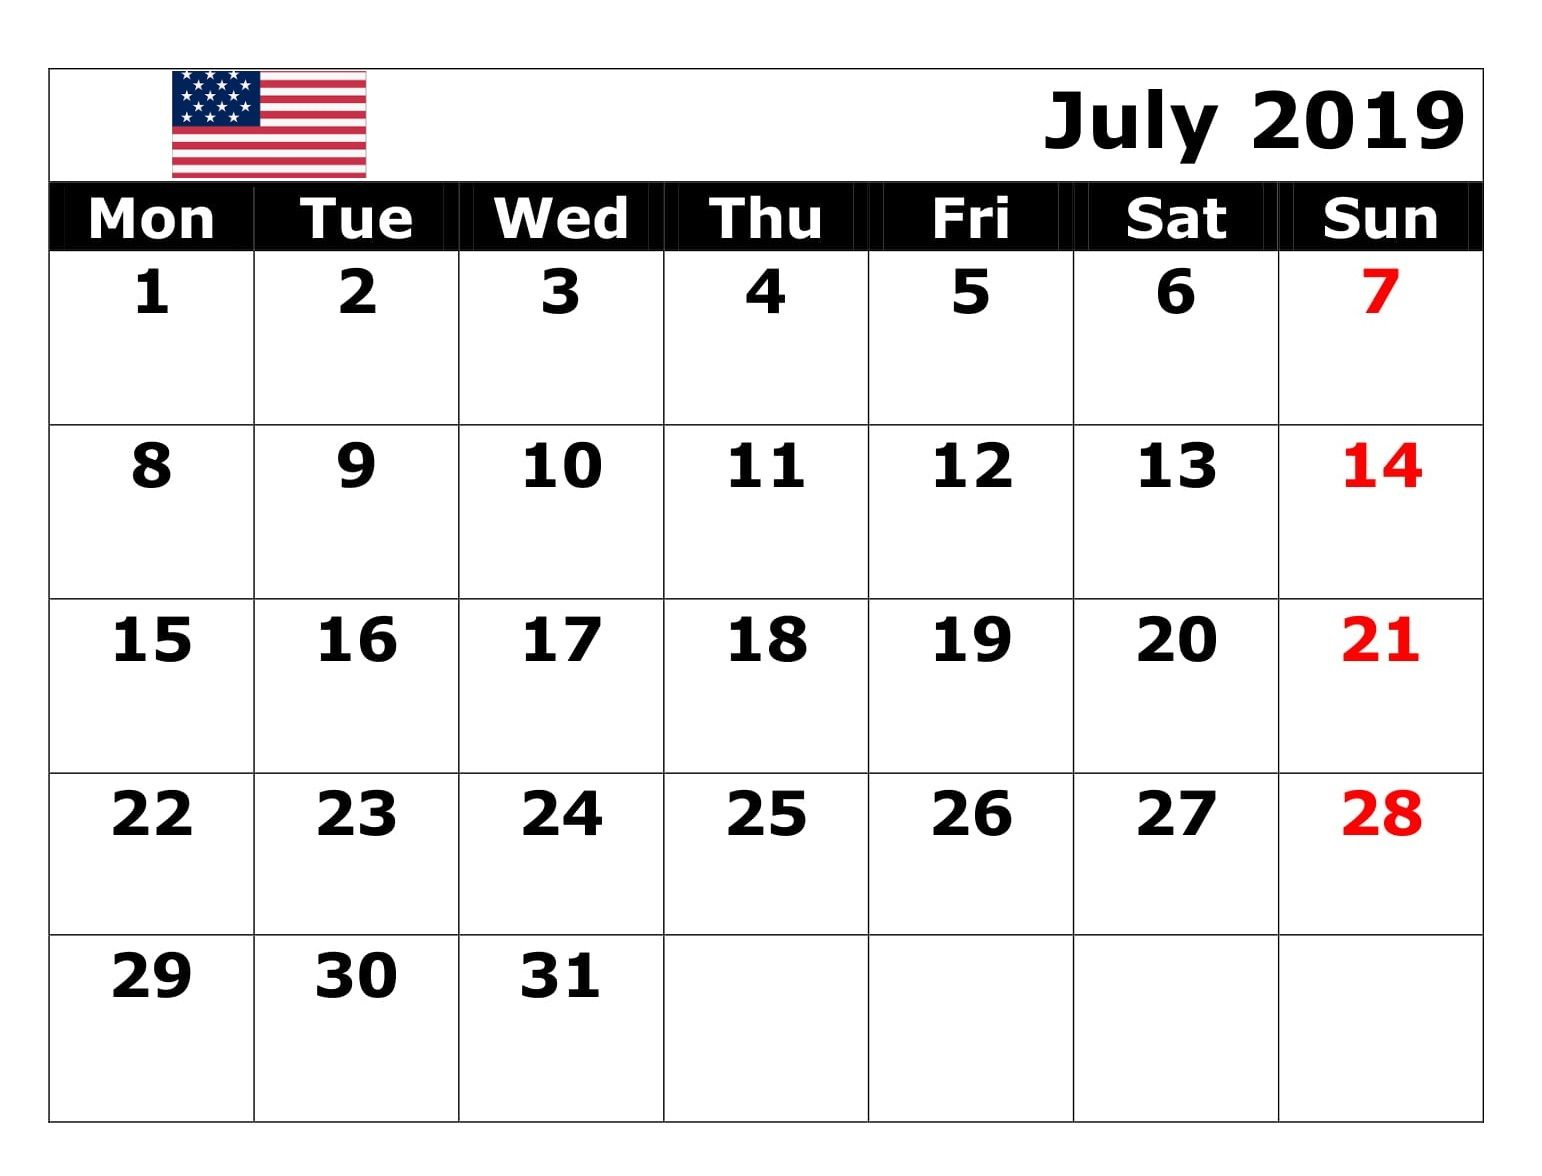 July 2019 USA Bank Holidays Calendar